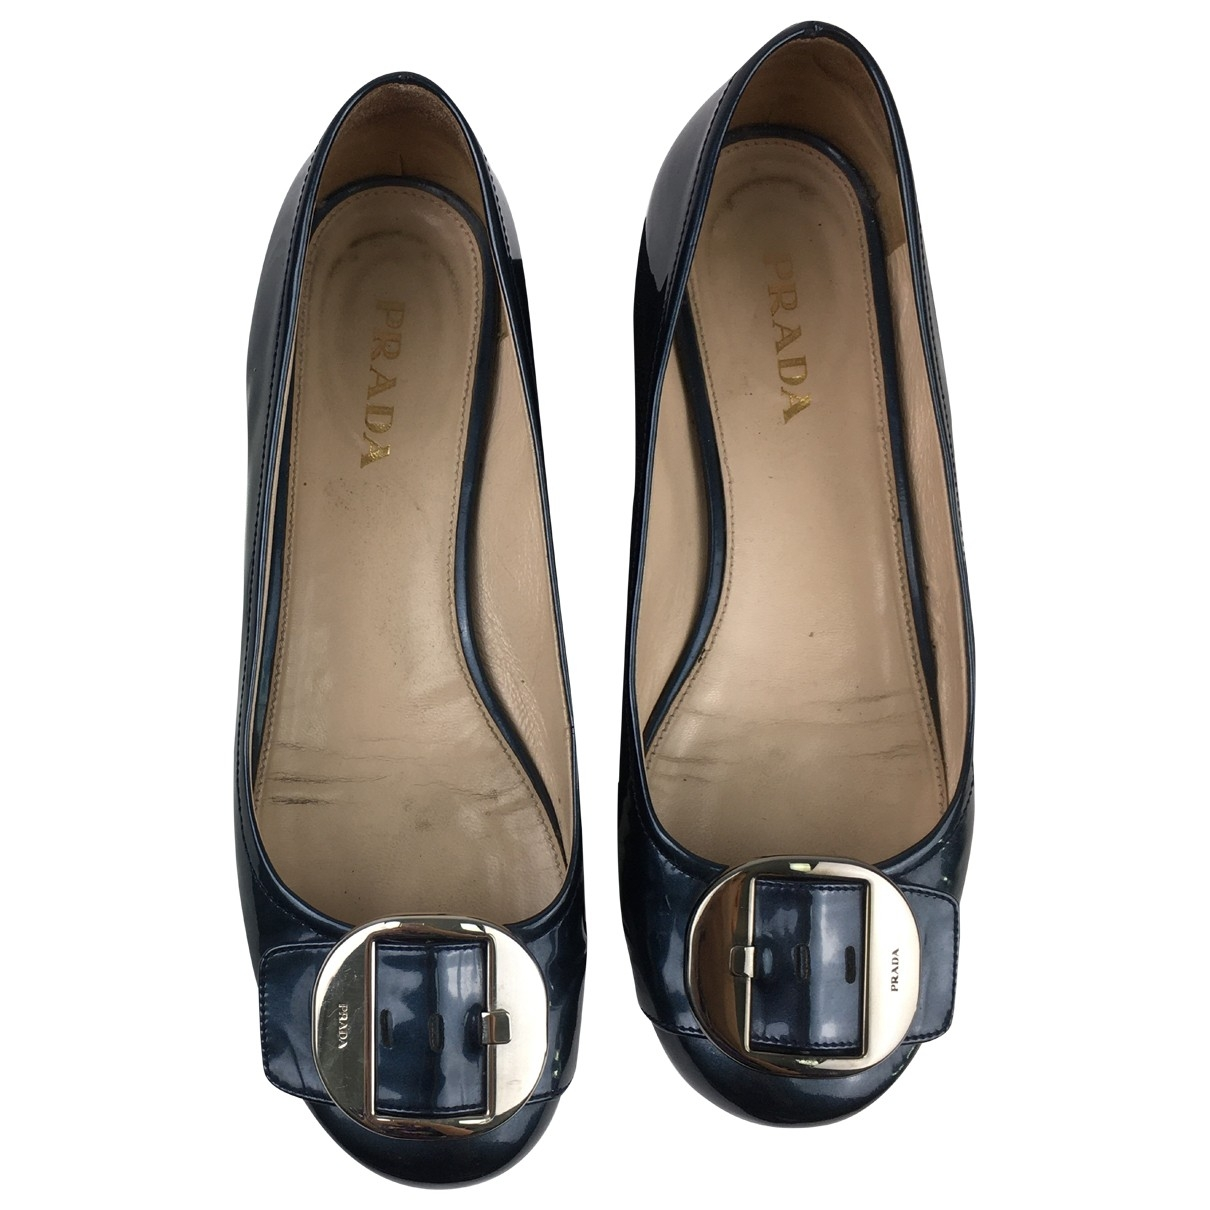 Prada \N Ballerinas in  Blau Lackleder